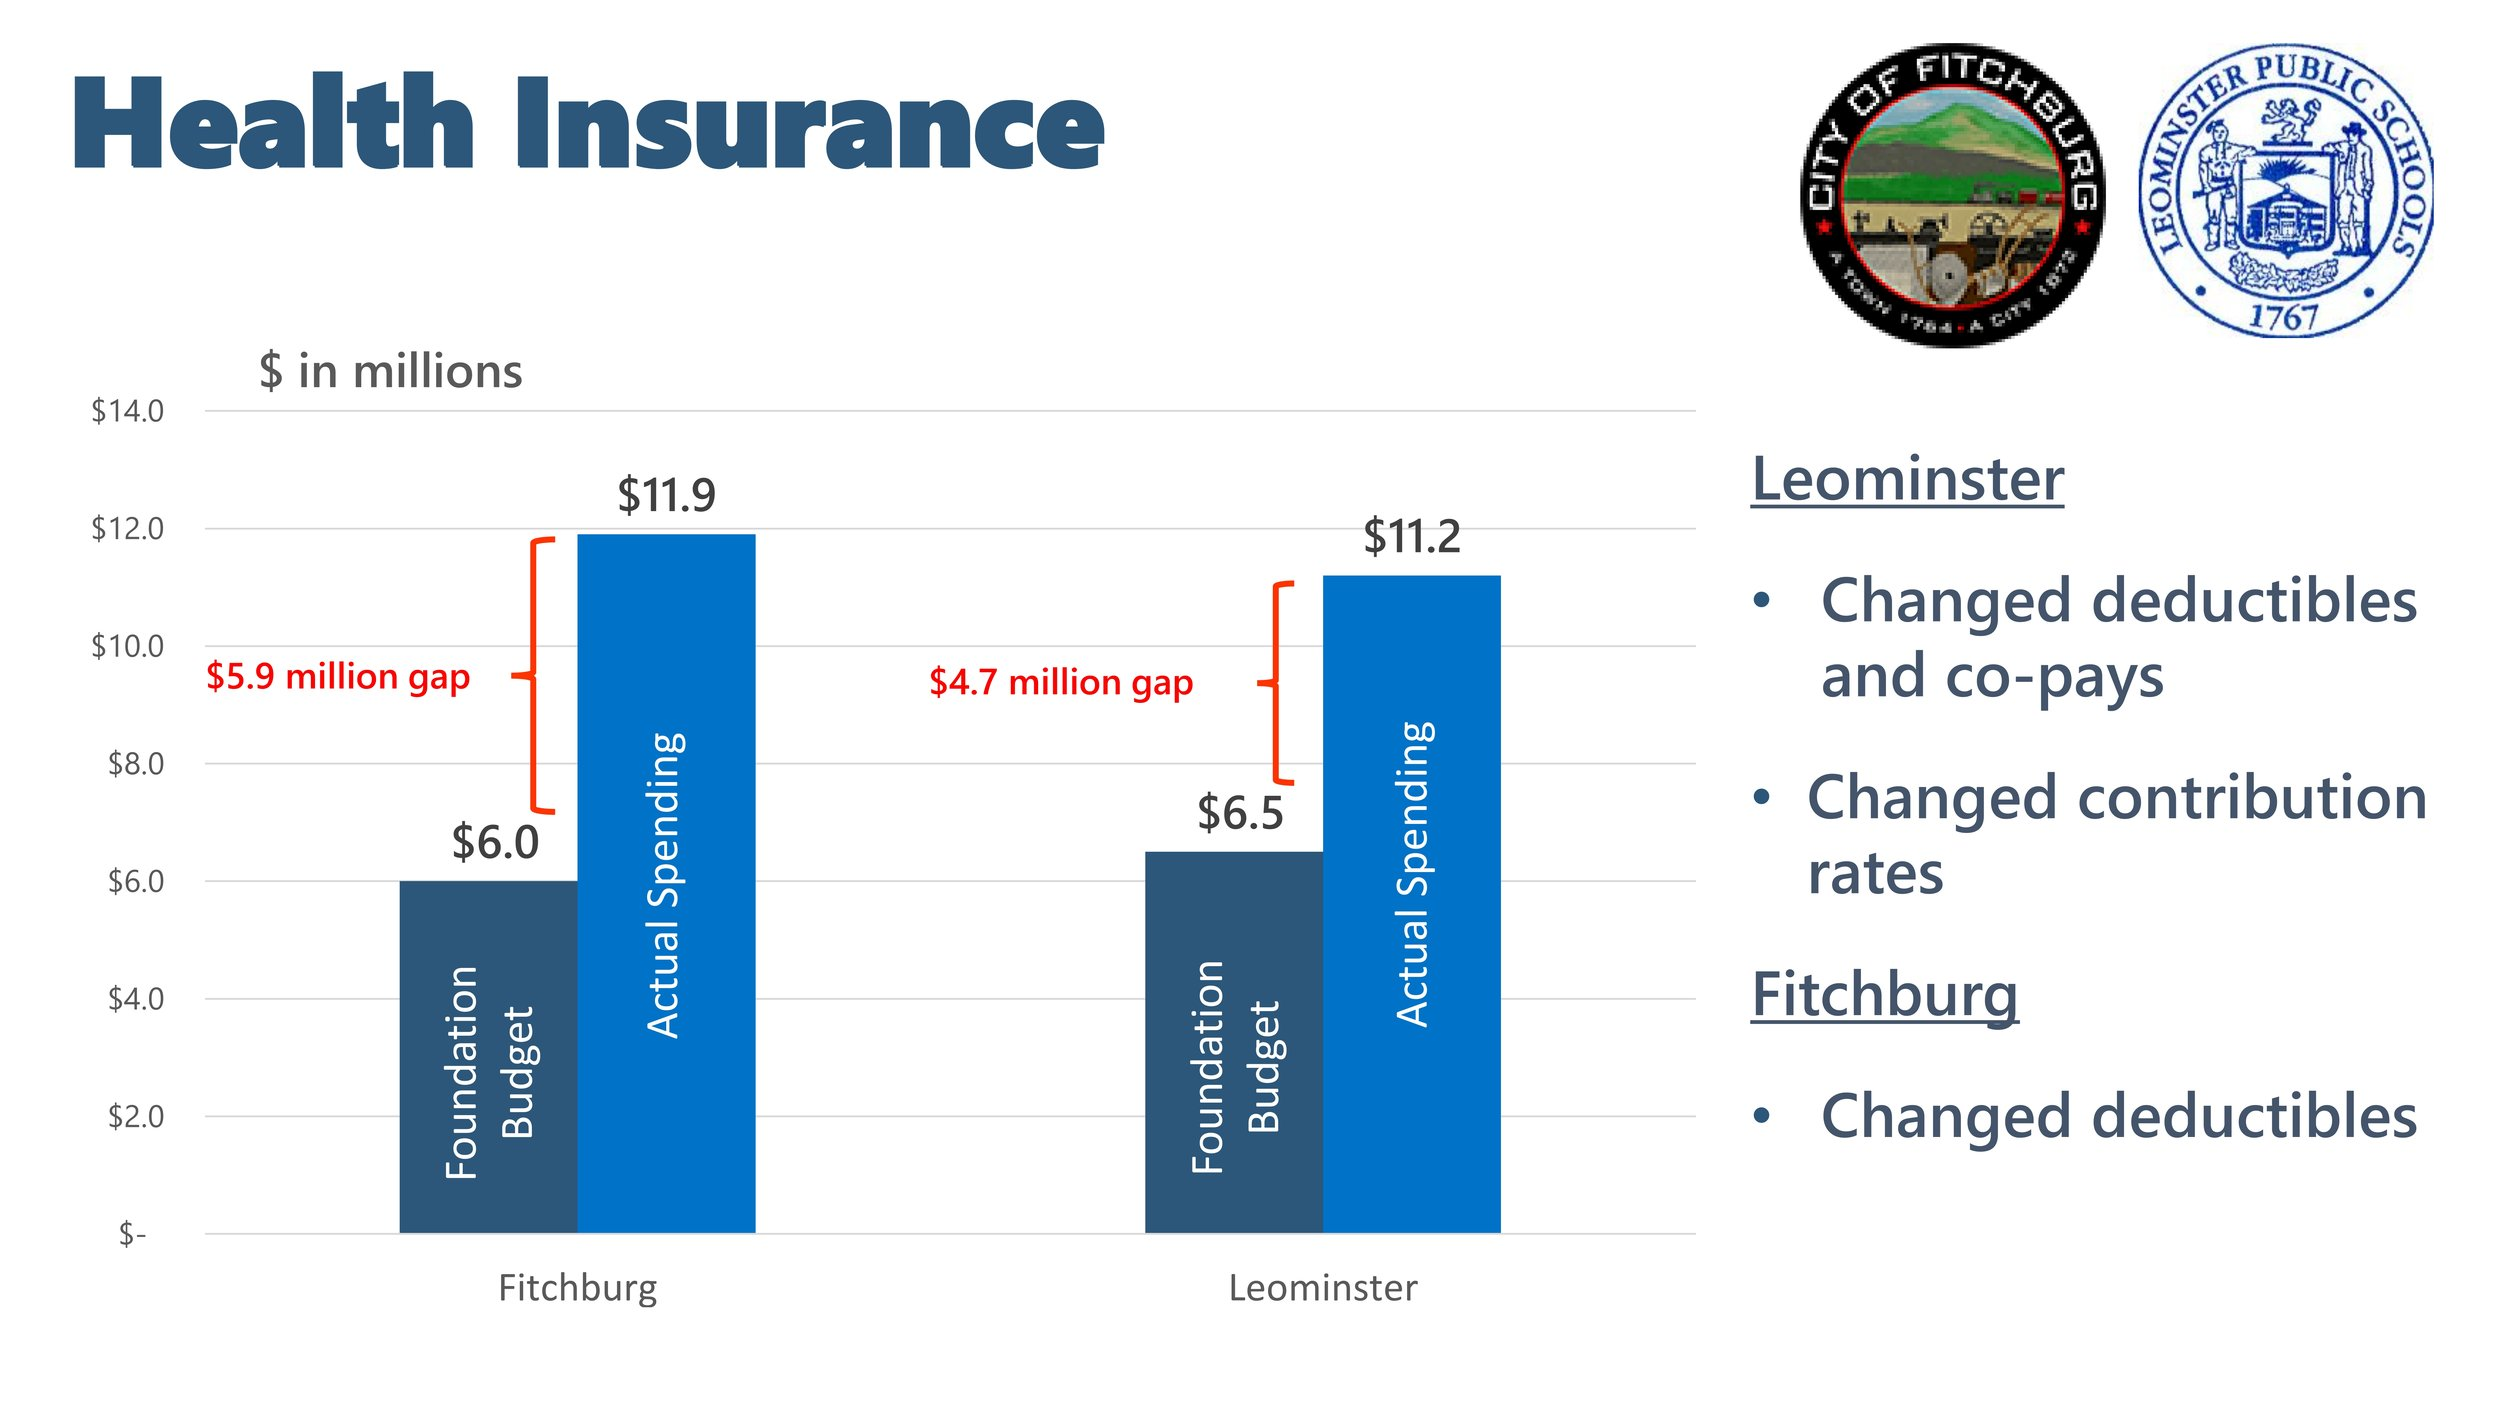 Fitchburg Leominster Health Insurance Budget.jpg